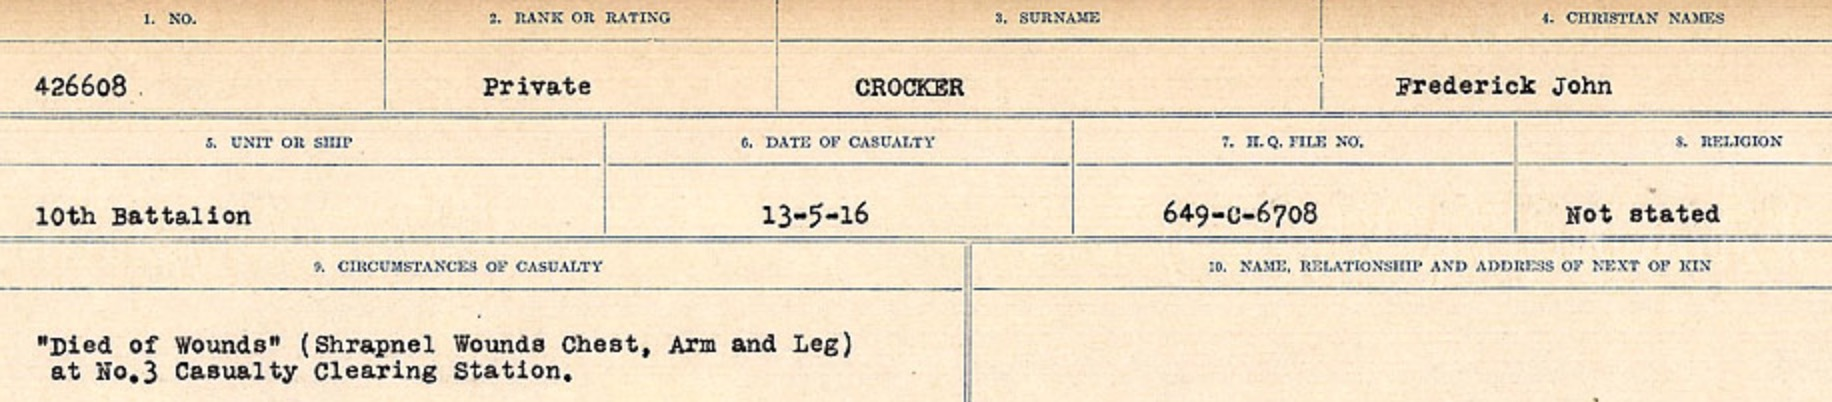 Circumstances of death registers– Source: Library and Archives Canada. CIRCUMSTANCES OF DEATH REGISTERS, FIRST WORLD WAR Surnames: CRABB TO CROSSLAND Microform Sequence 24; Volume Number 31829_B016733. Reference RG150, 1992-93/314, 168. Page 579 of 788.